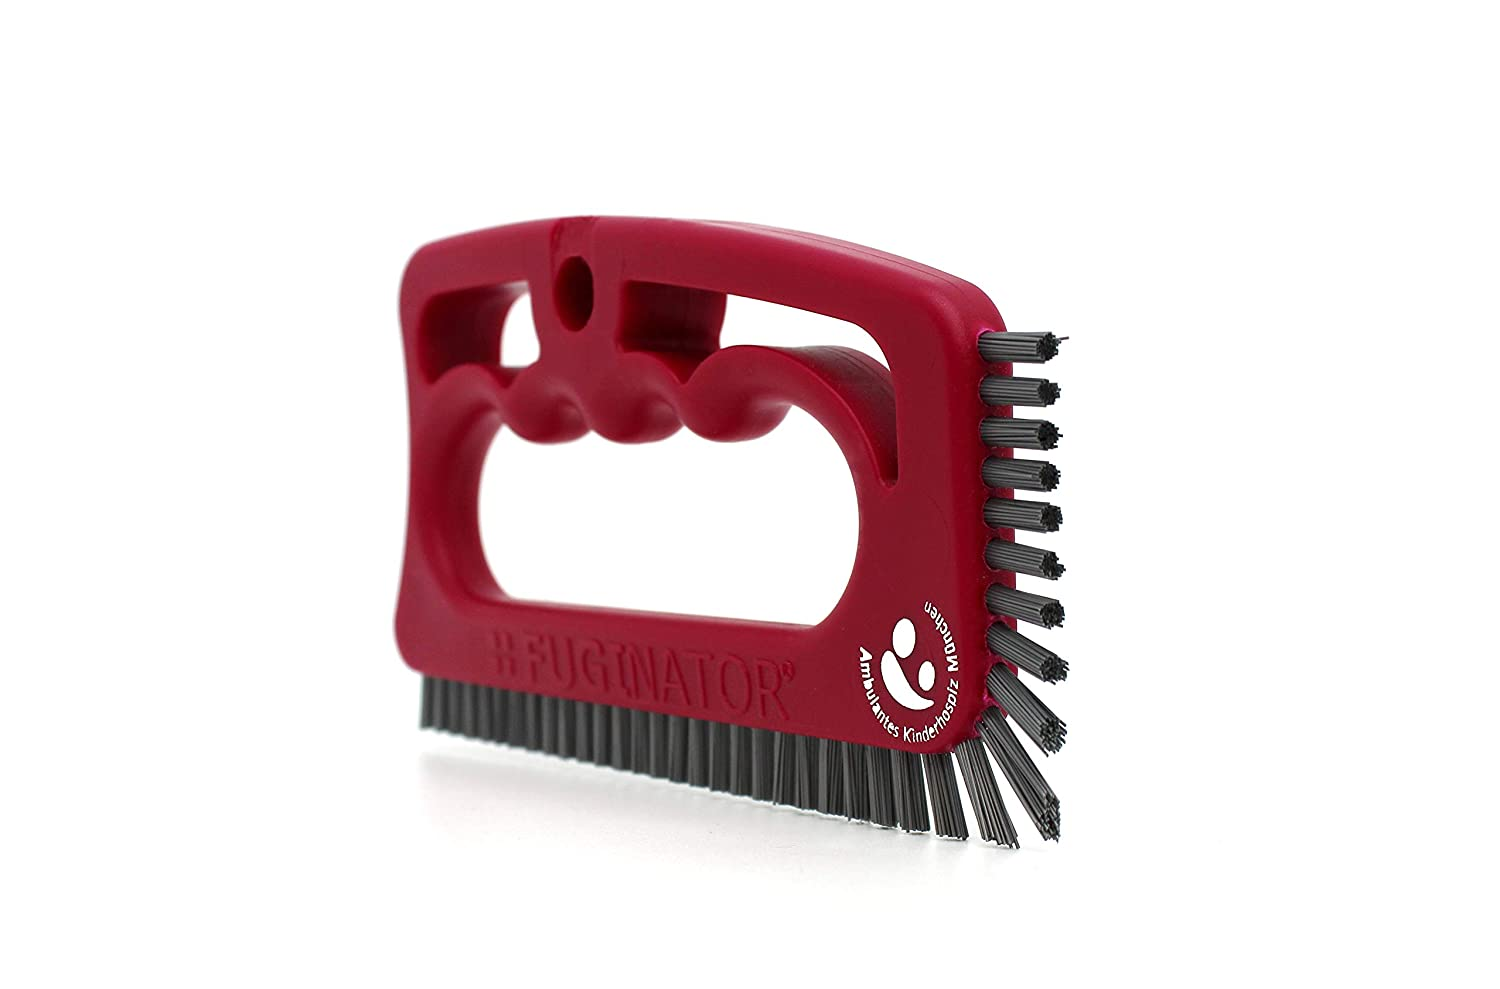 Grout Brush, Fuginator Master Hand Brush, universal brush, cleaning brush for bathroom, kitchen and household Charity-edition Fugenial